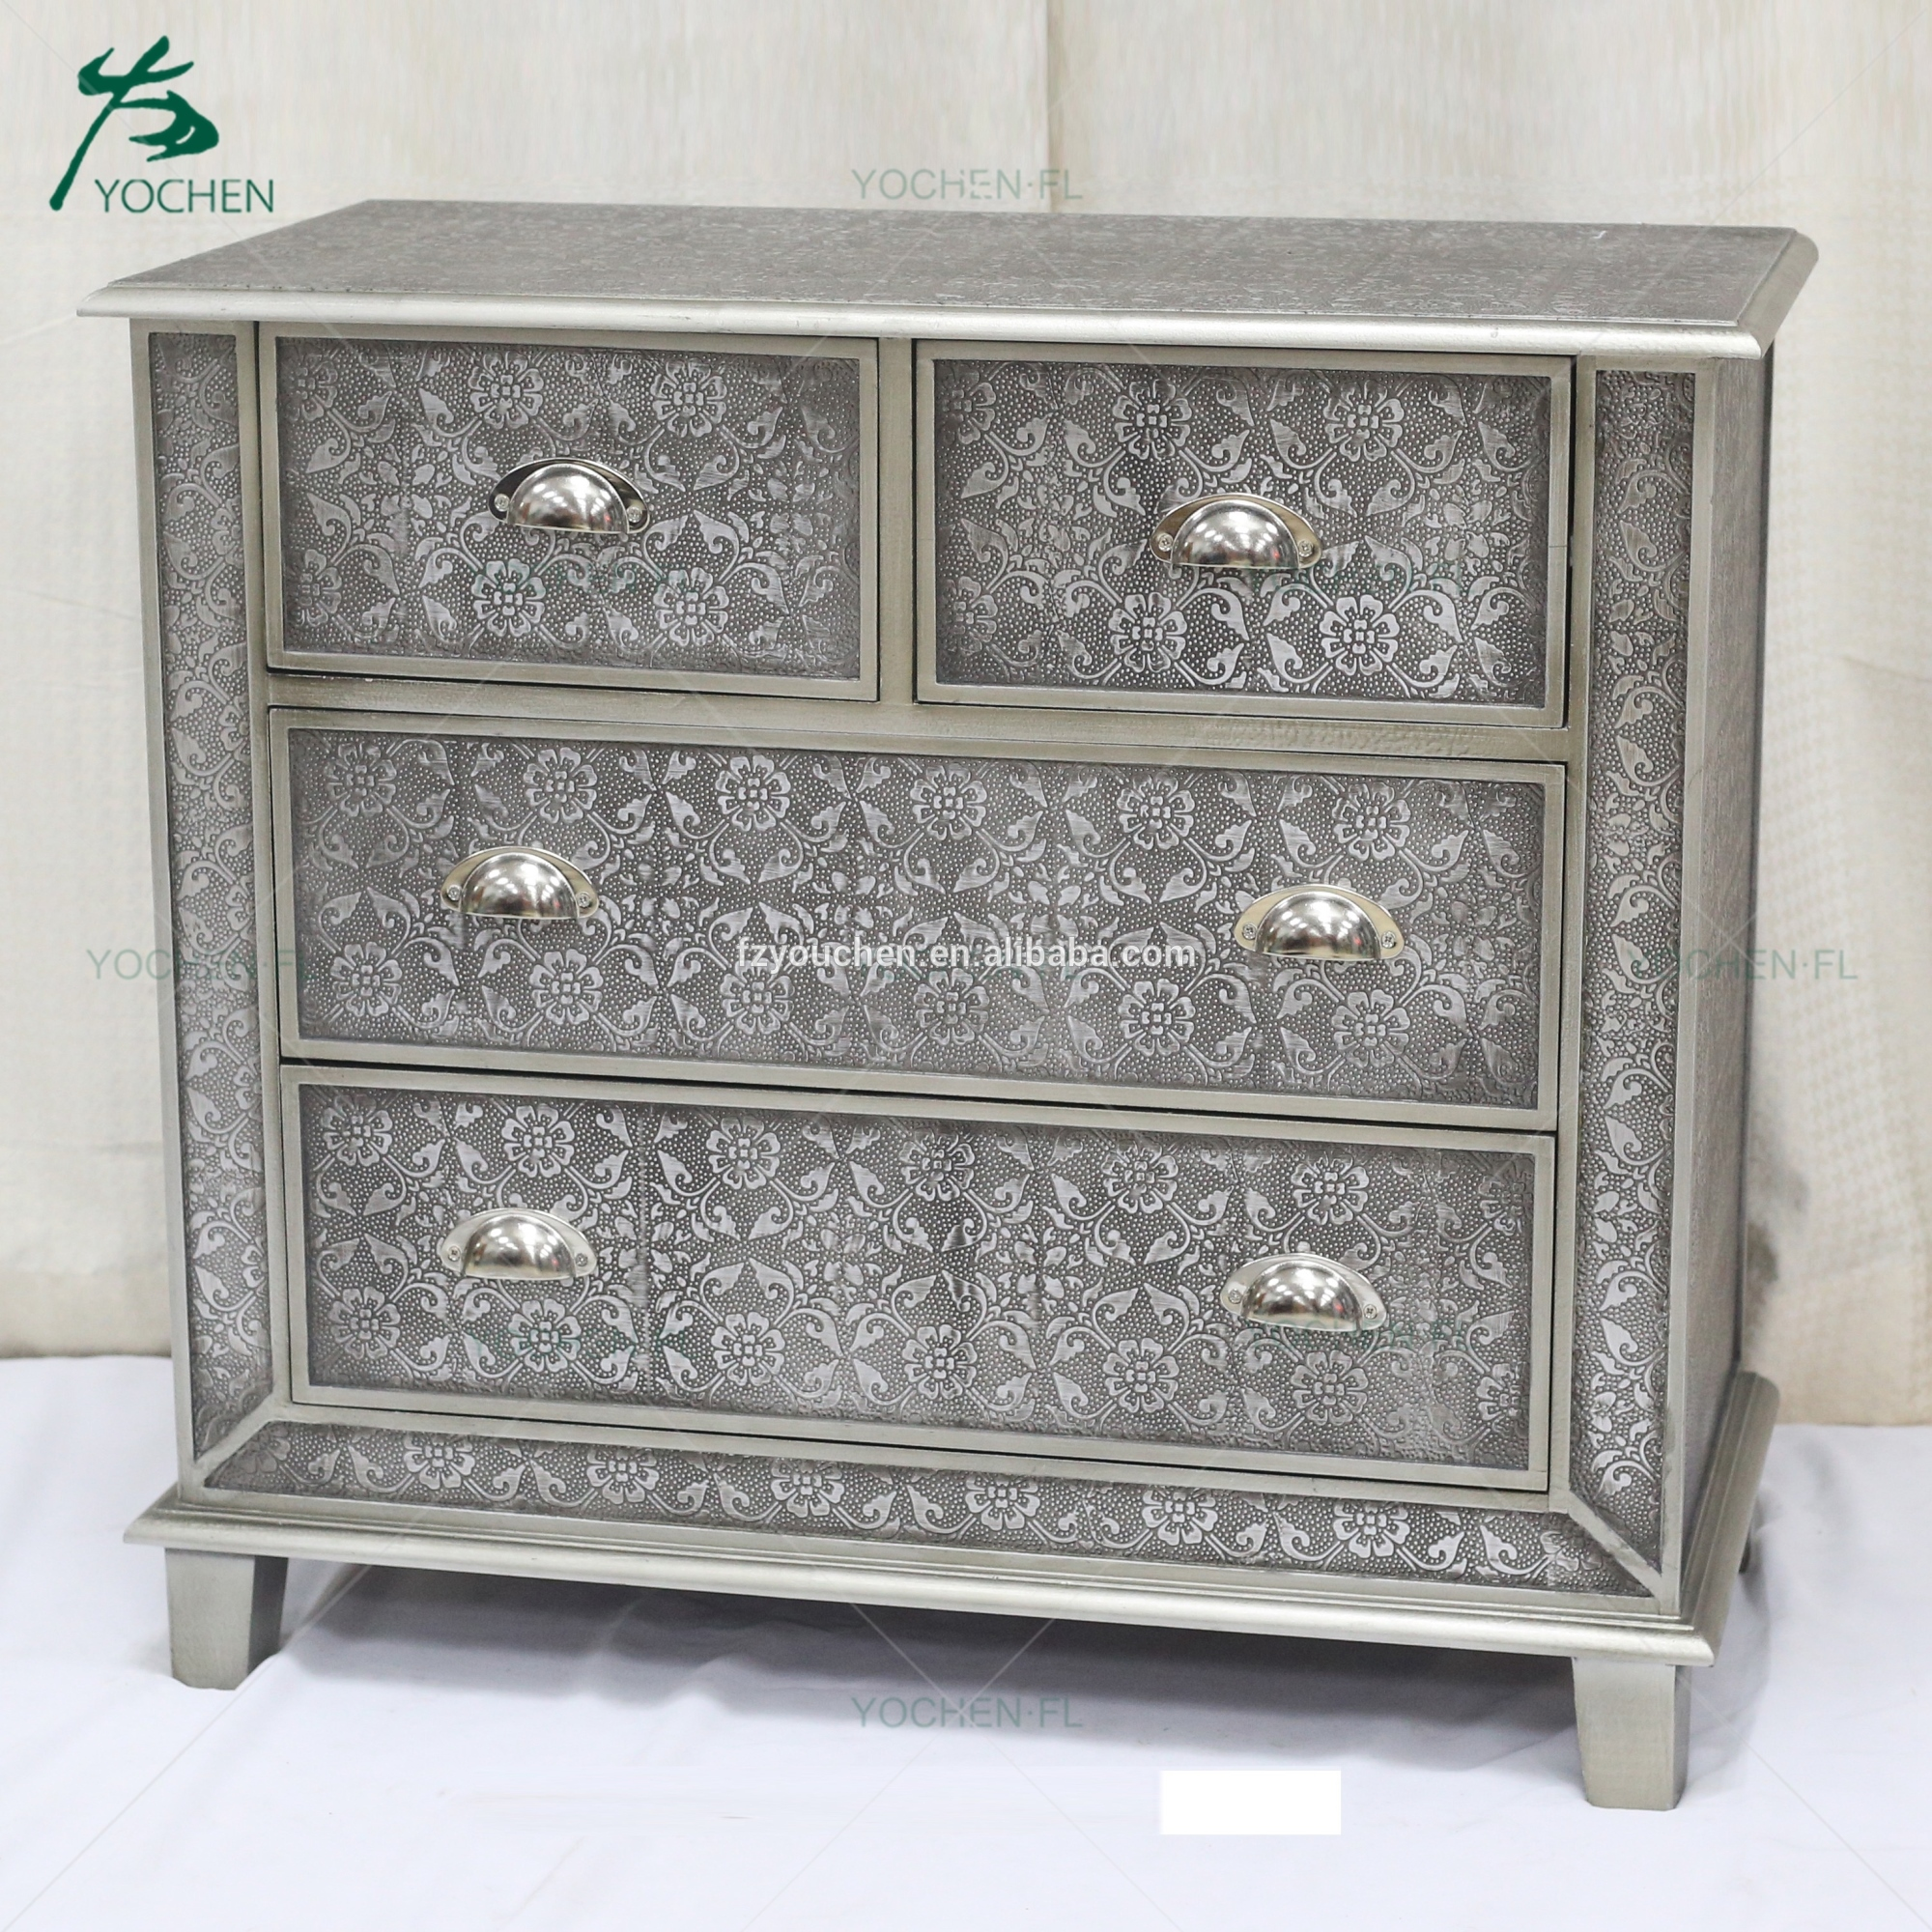 chinese antique reproduction furniture embossed wood cabinet small drawer